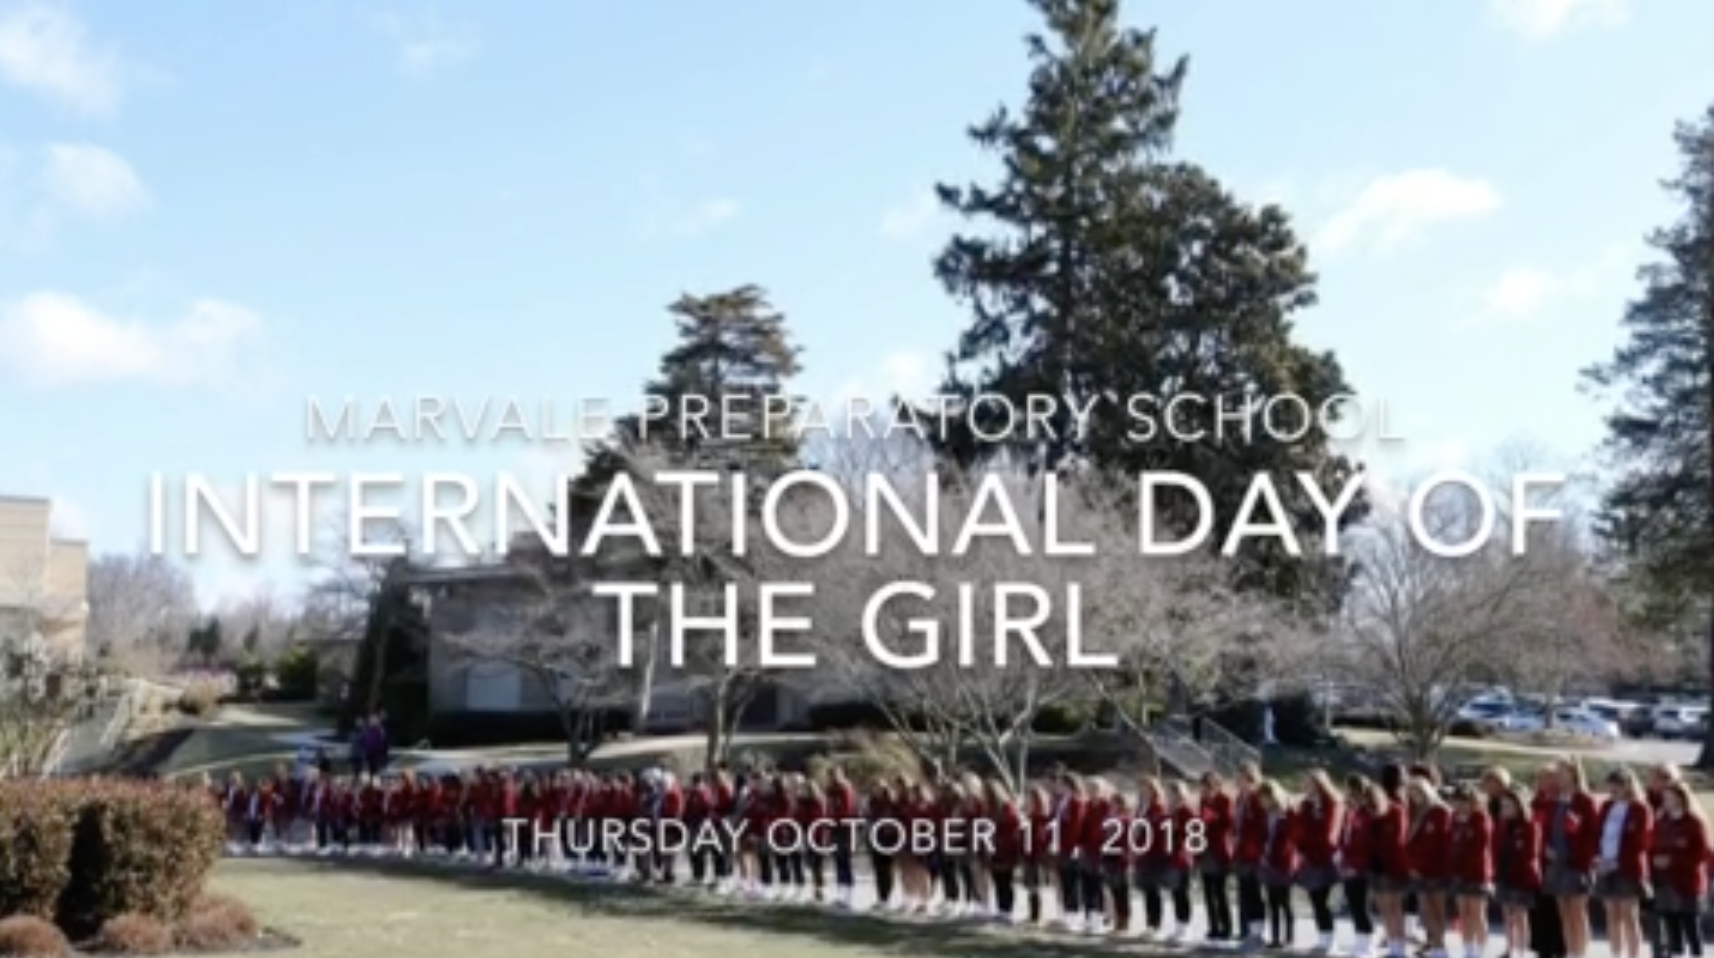 2018 International Day of the Girl